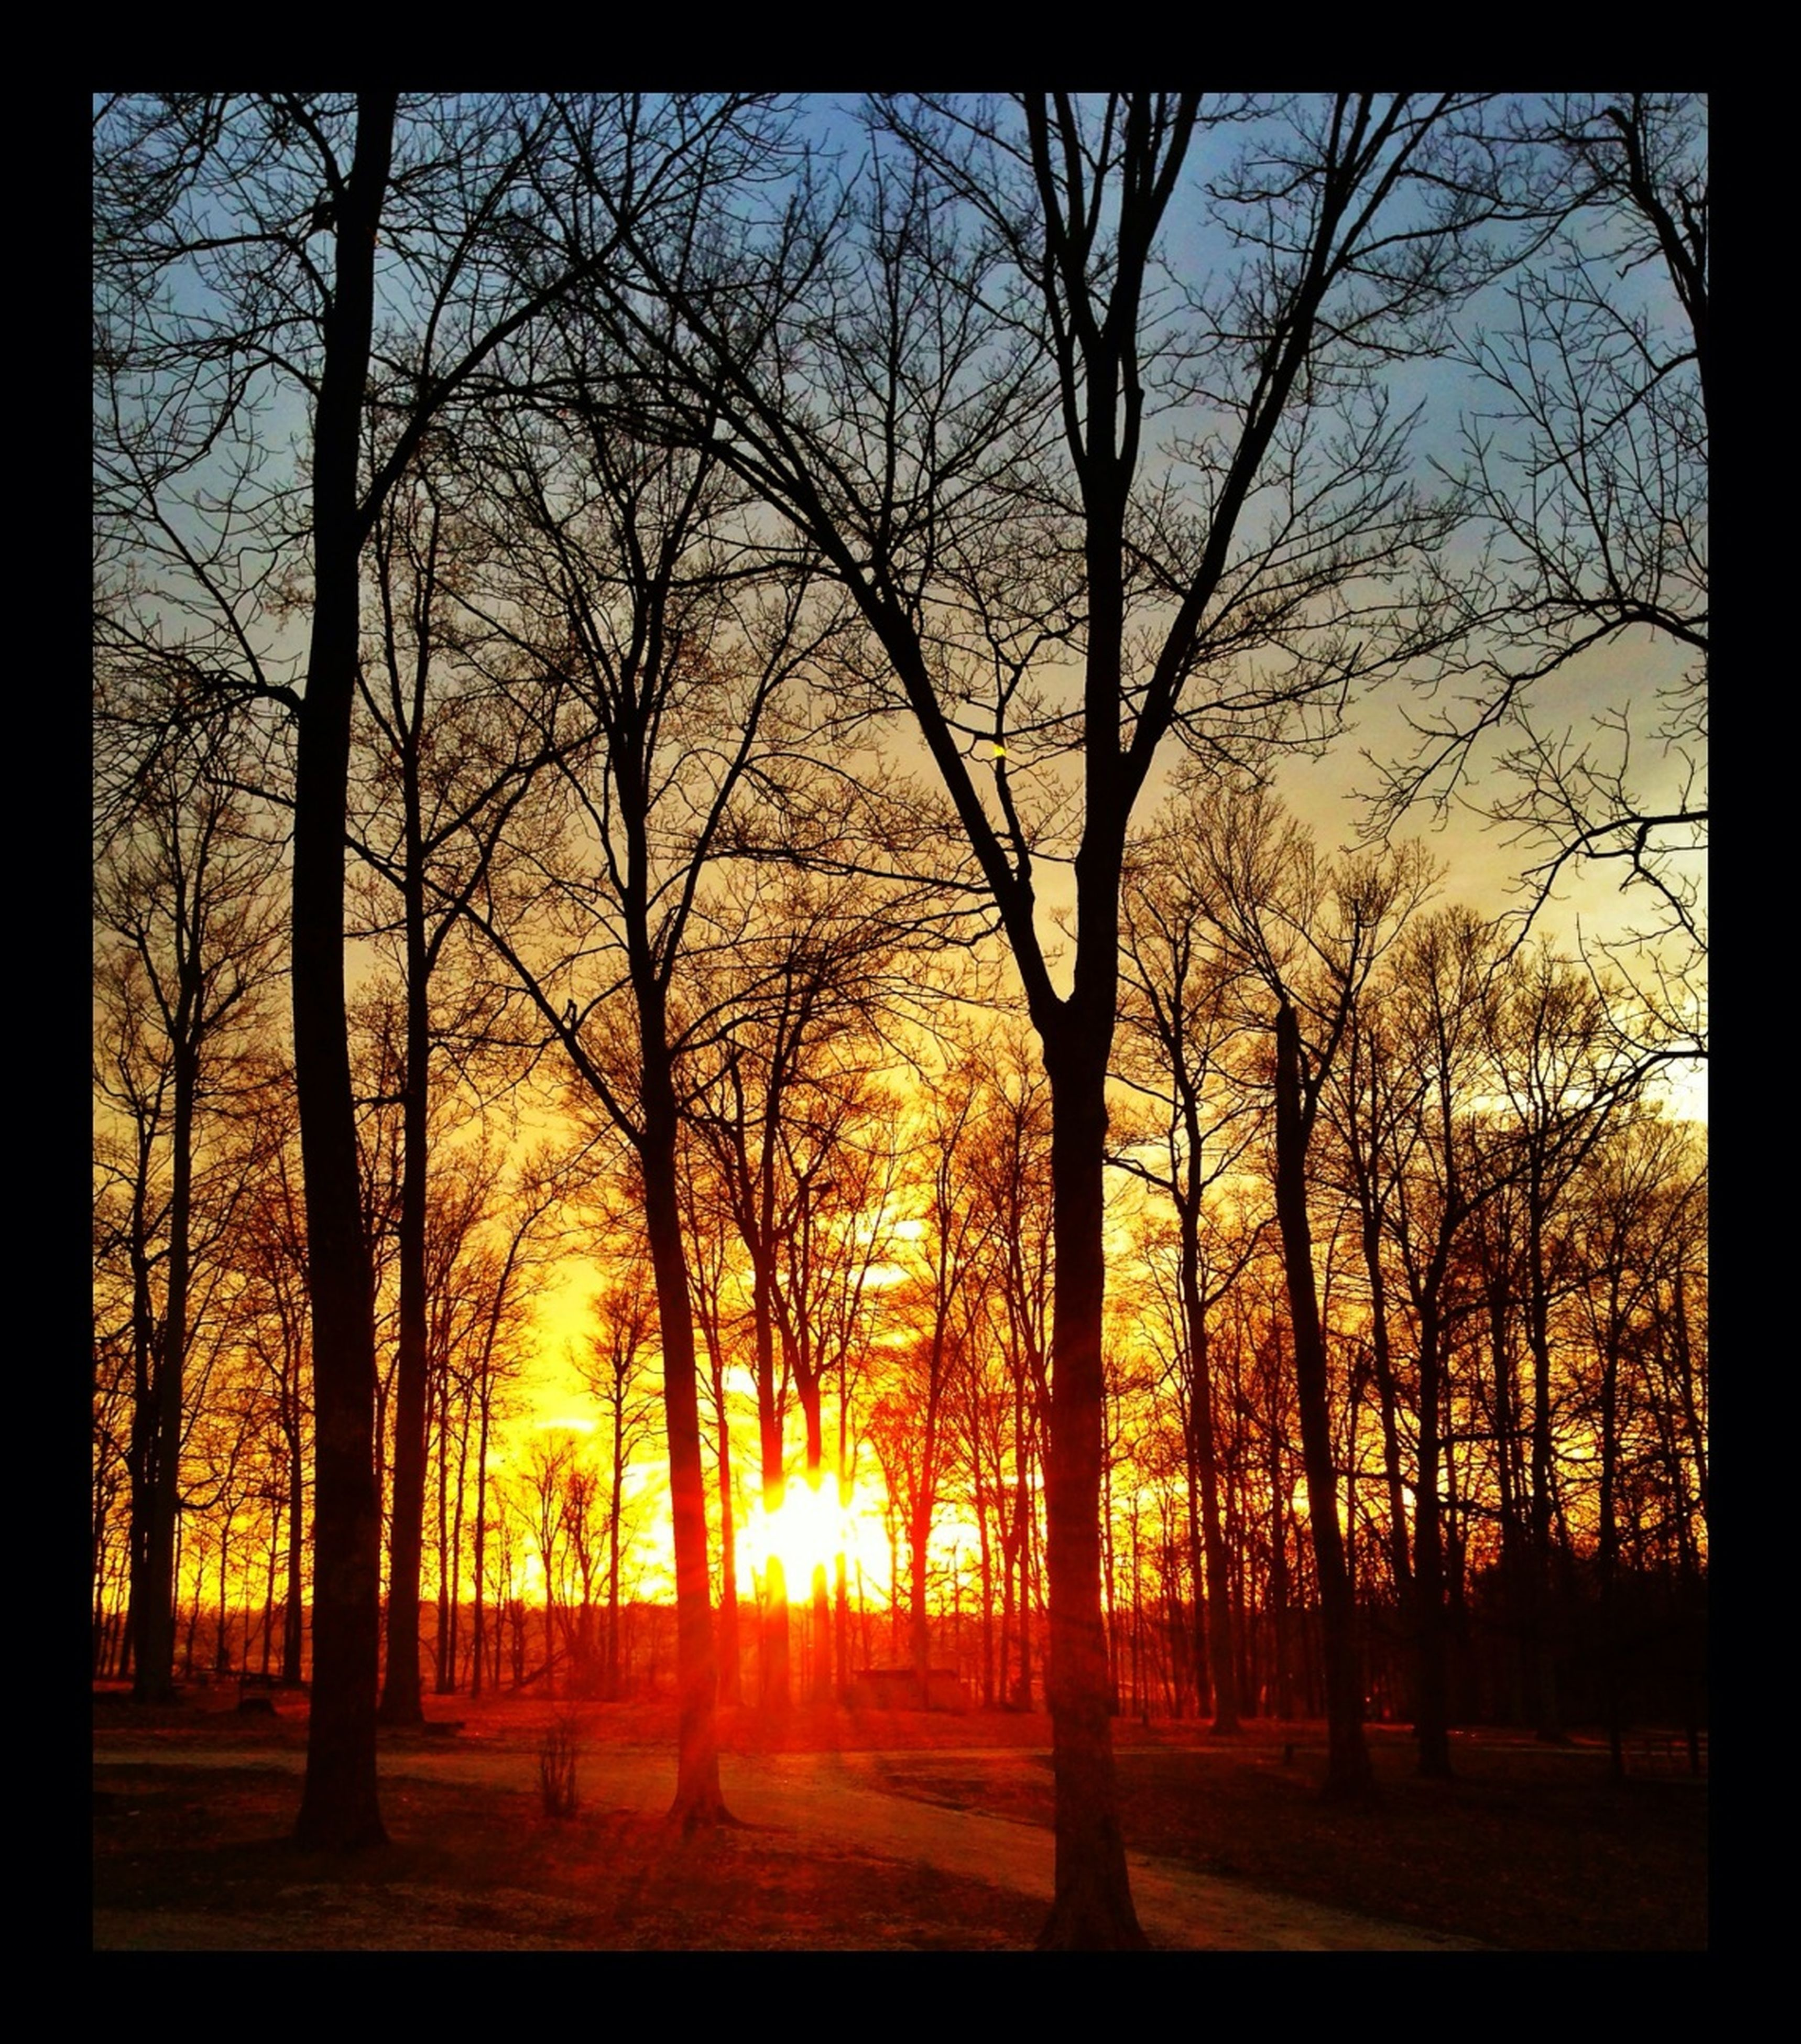 sunset, tree, sun, silhouette, orange color, tranquil scene, tranquility, scenics, beauty in nature, transfer print, bare tree, nature, sunlight, landscape, idyllic, sky, branch, auto post production filter, tree trunk, back lit